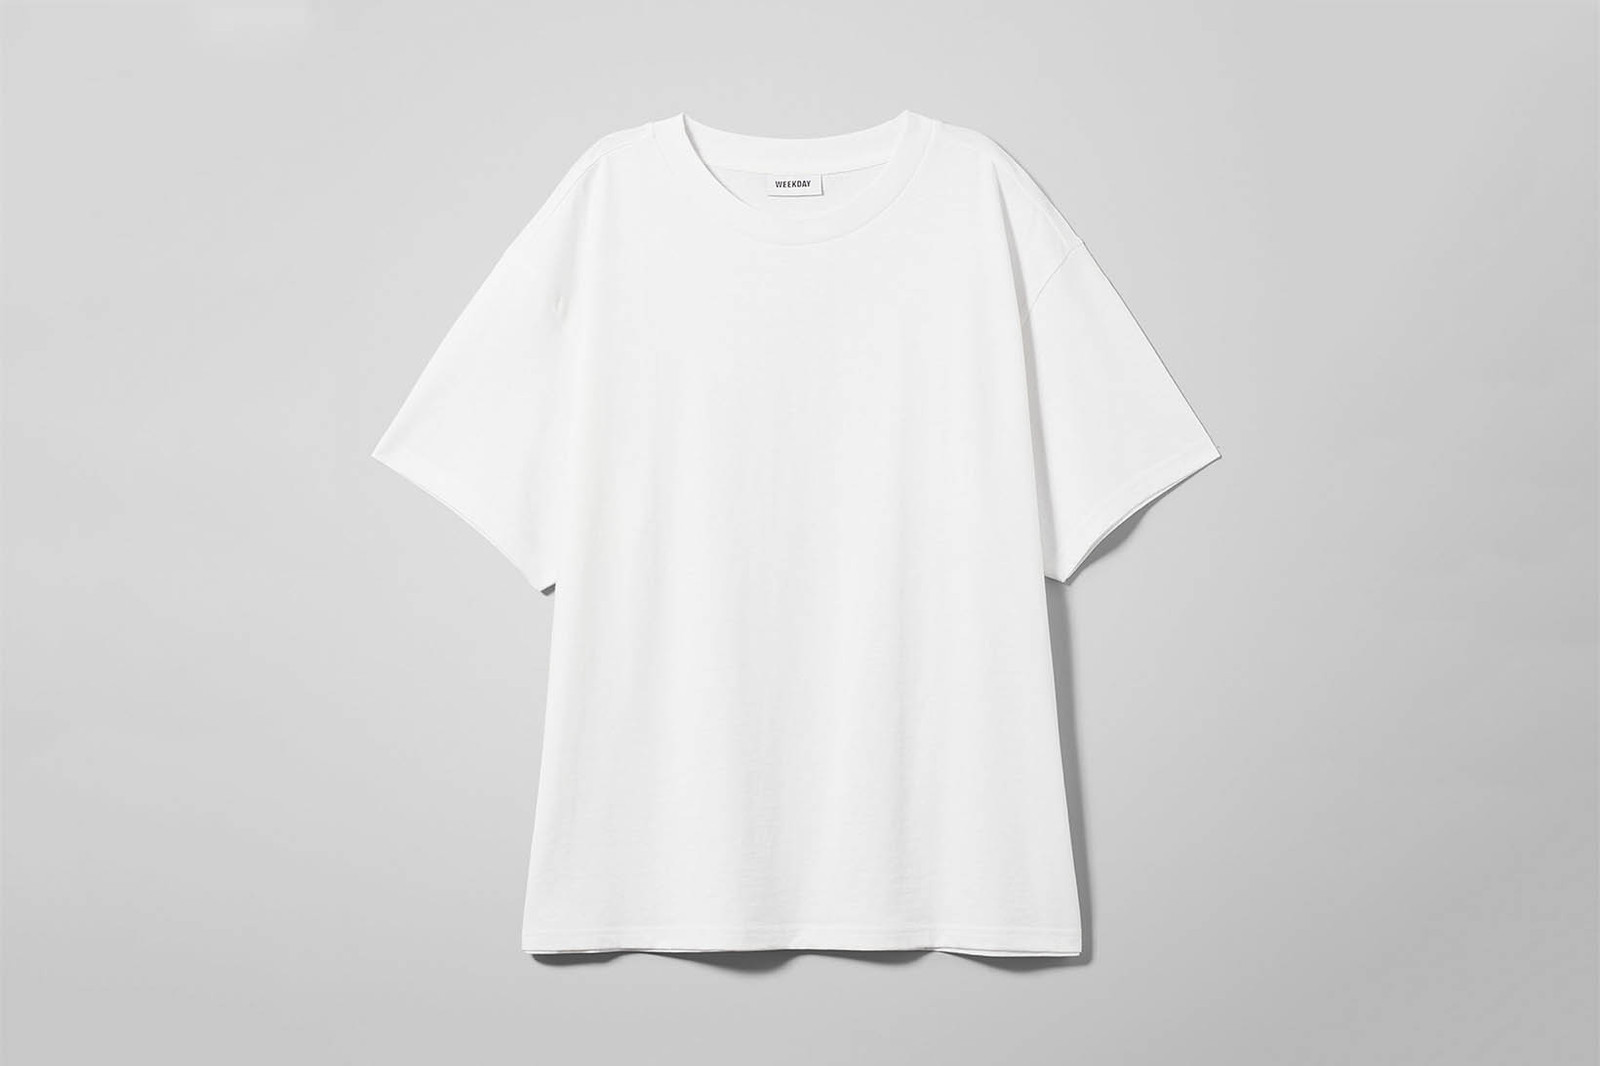 Are You Am I Rumi Neely Blogger White Impy Tee T-Shirt Tight Crop Top